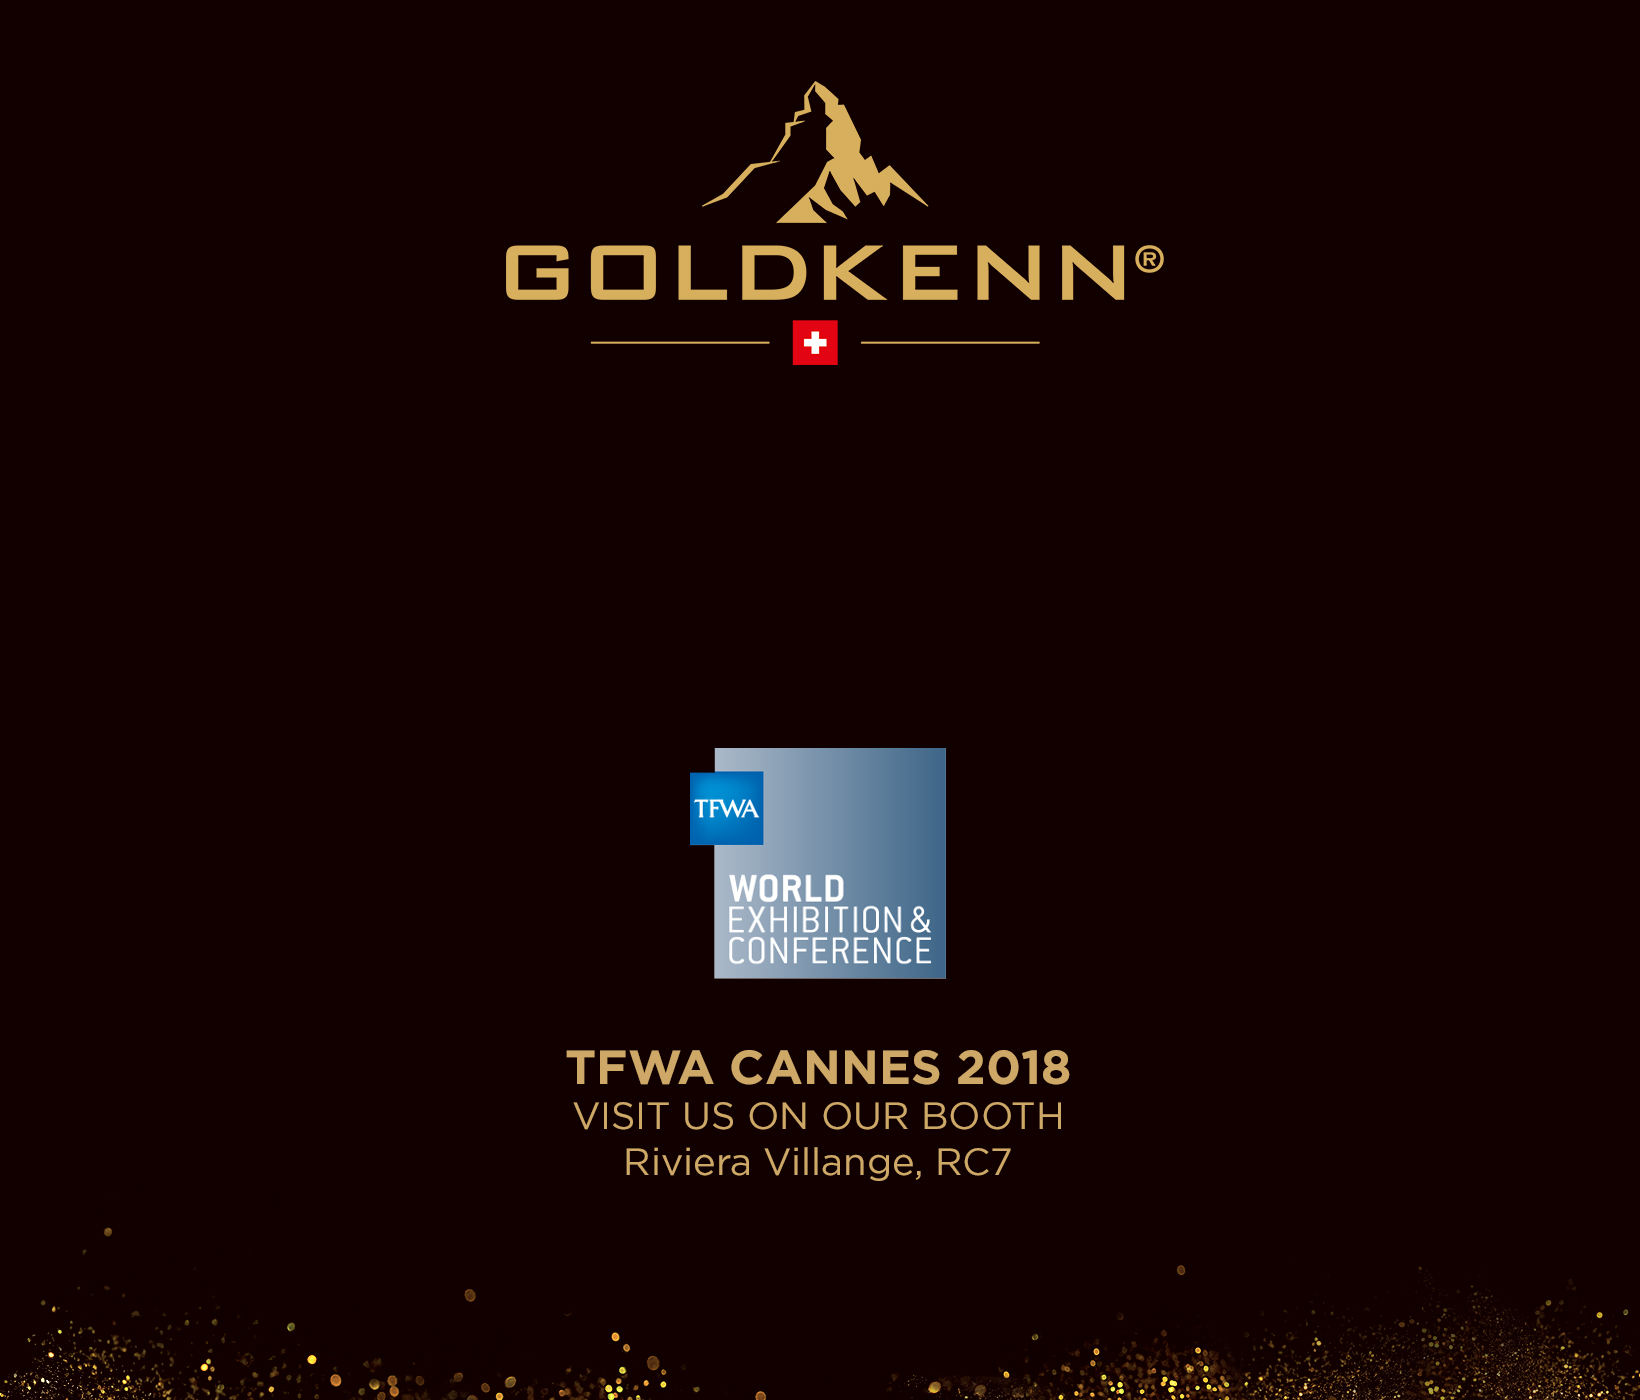 GOLDKENN participe à TFWA (Tax Free World Association) à Cannes, en France